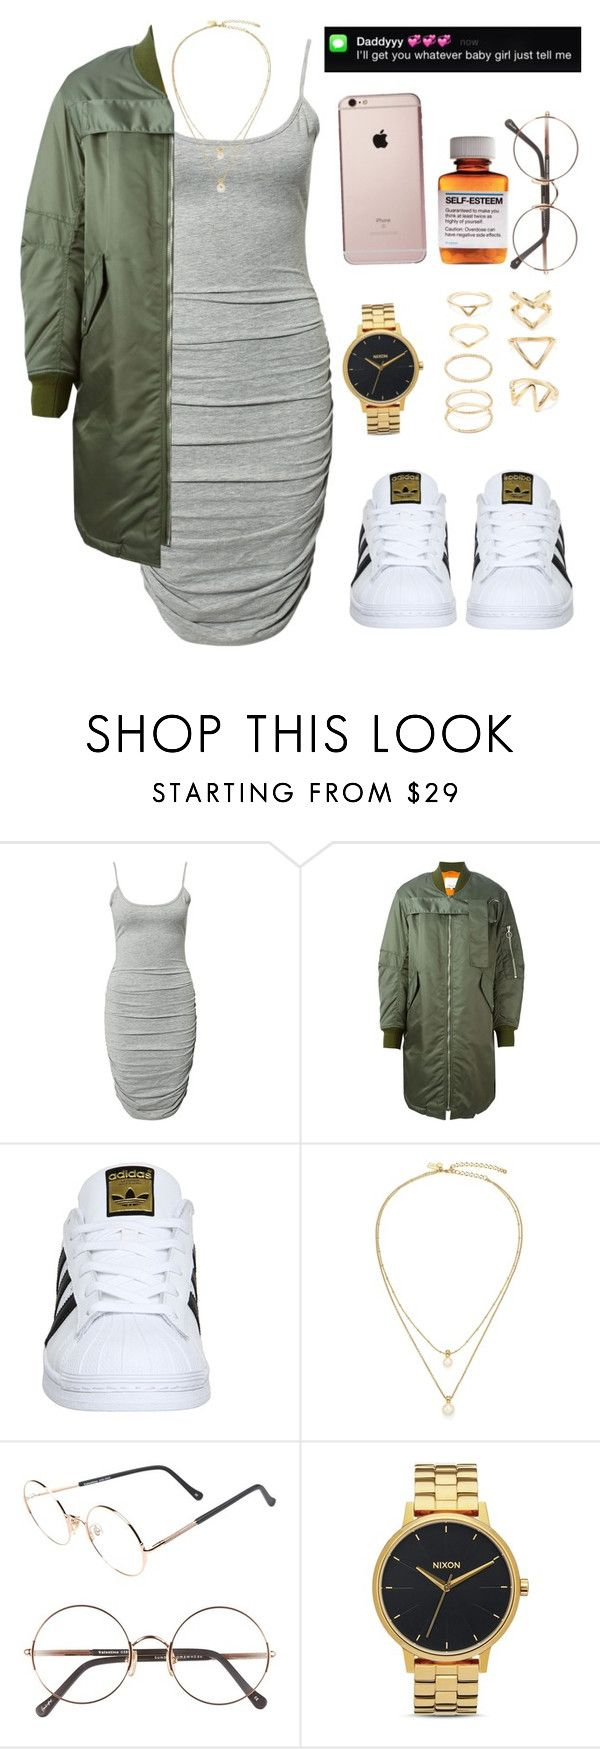 """Needed Me x Rihanna"" by versaceshawty ❤ liked on Polyvore featuring Notion 1.3, 3.1 Phillip Lim, adidas, Kate Spade, Sunday Somewhere, Børn, Nixon and Forever 21"